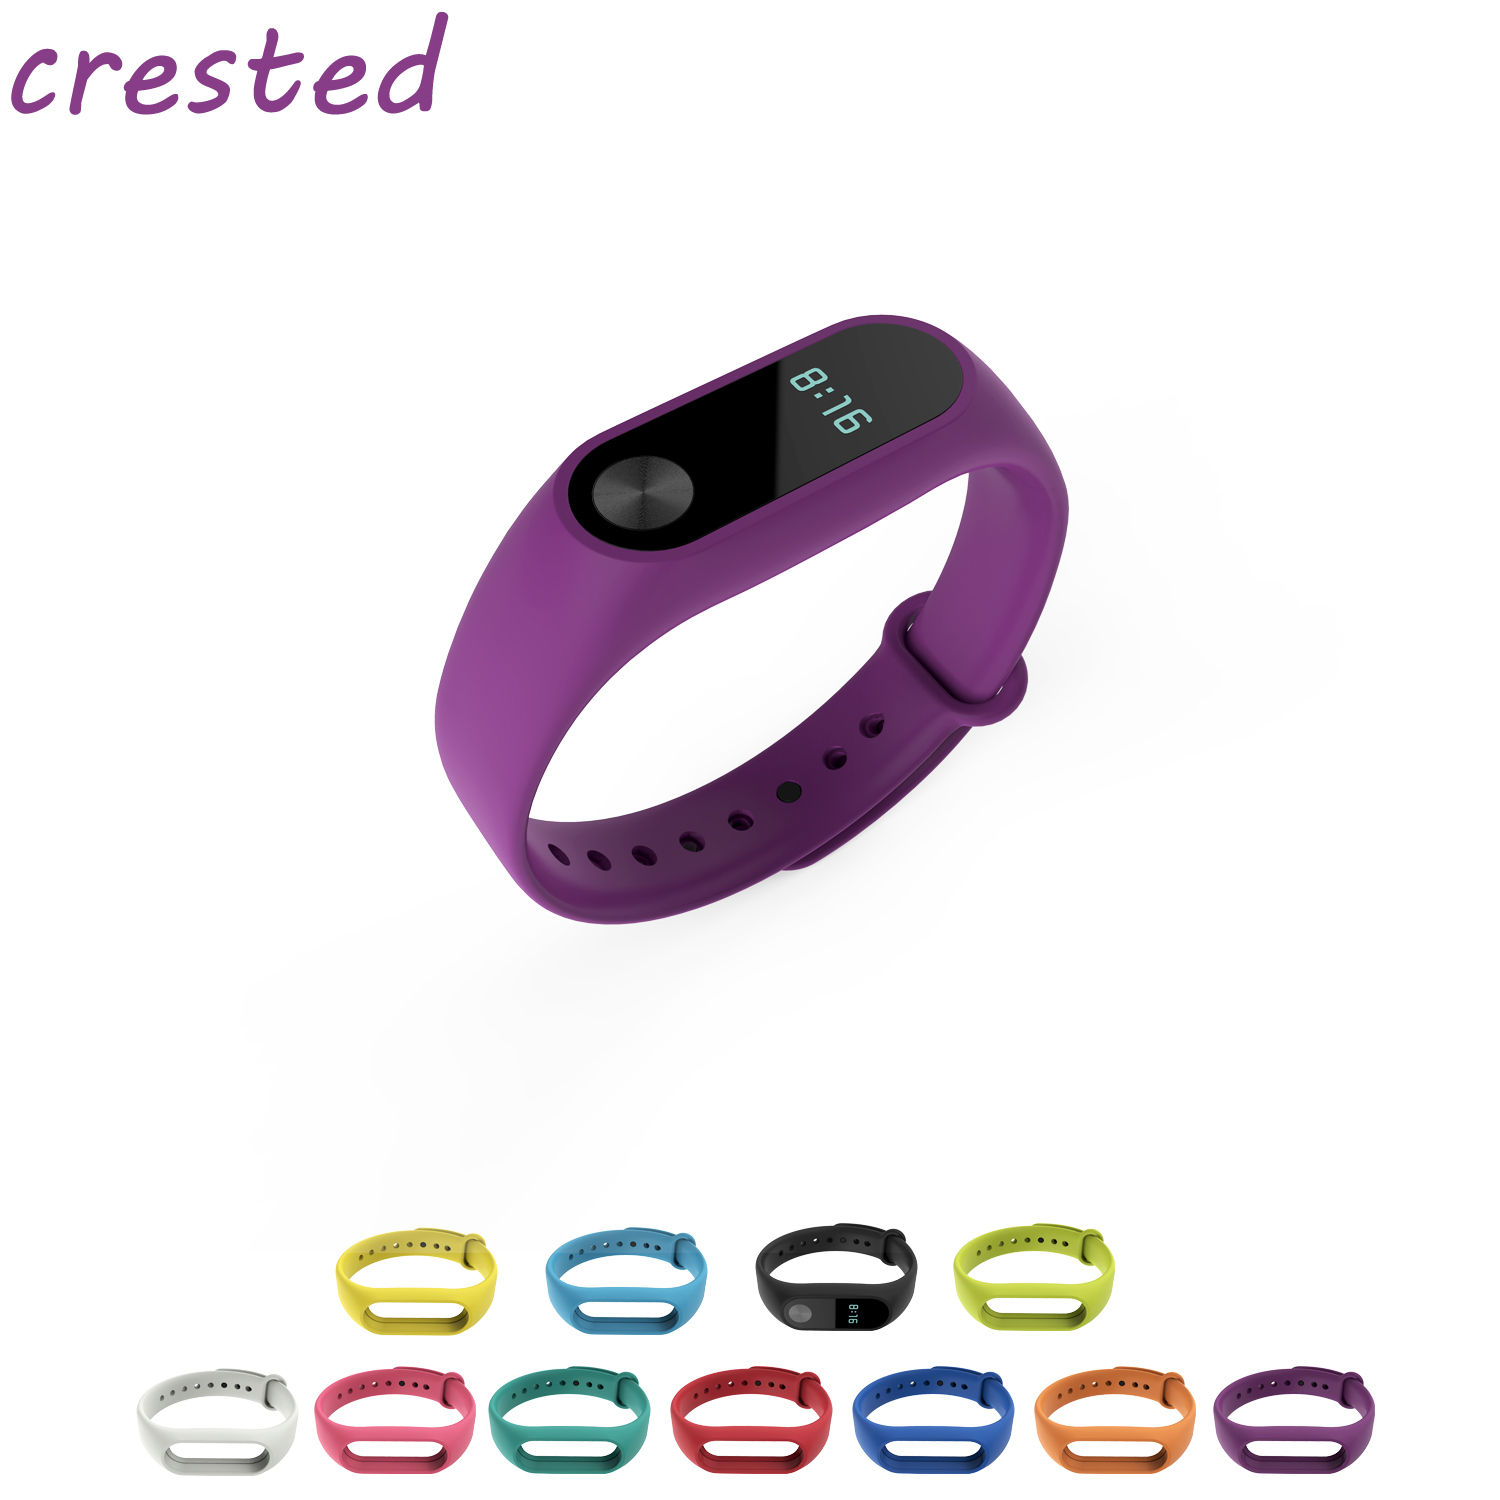 CRESTED Colorful Silicone Wristband Strap for Miband 2 Xiaomi Mi band 2 Wrist bands Bracelet Replacement watchband new fashion original silicon wrist strap wristband bracelet replacement for xiaomi mi band 2 dignity 8 9